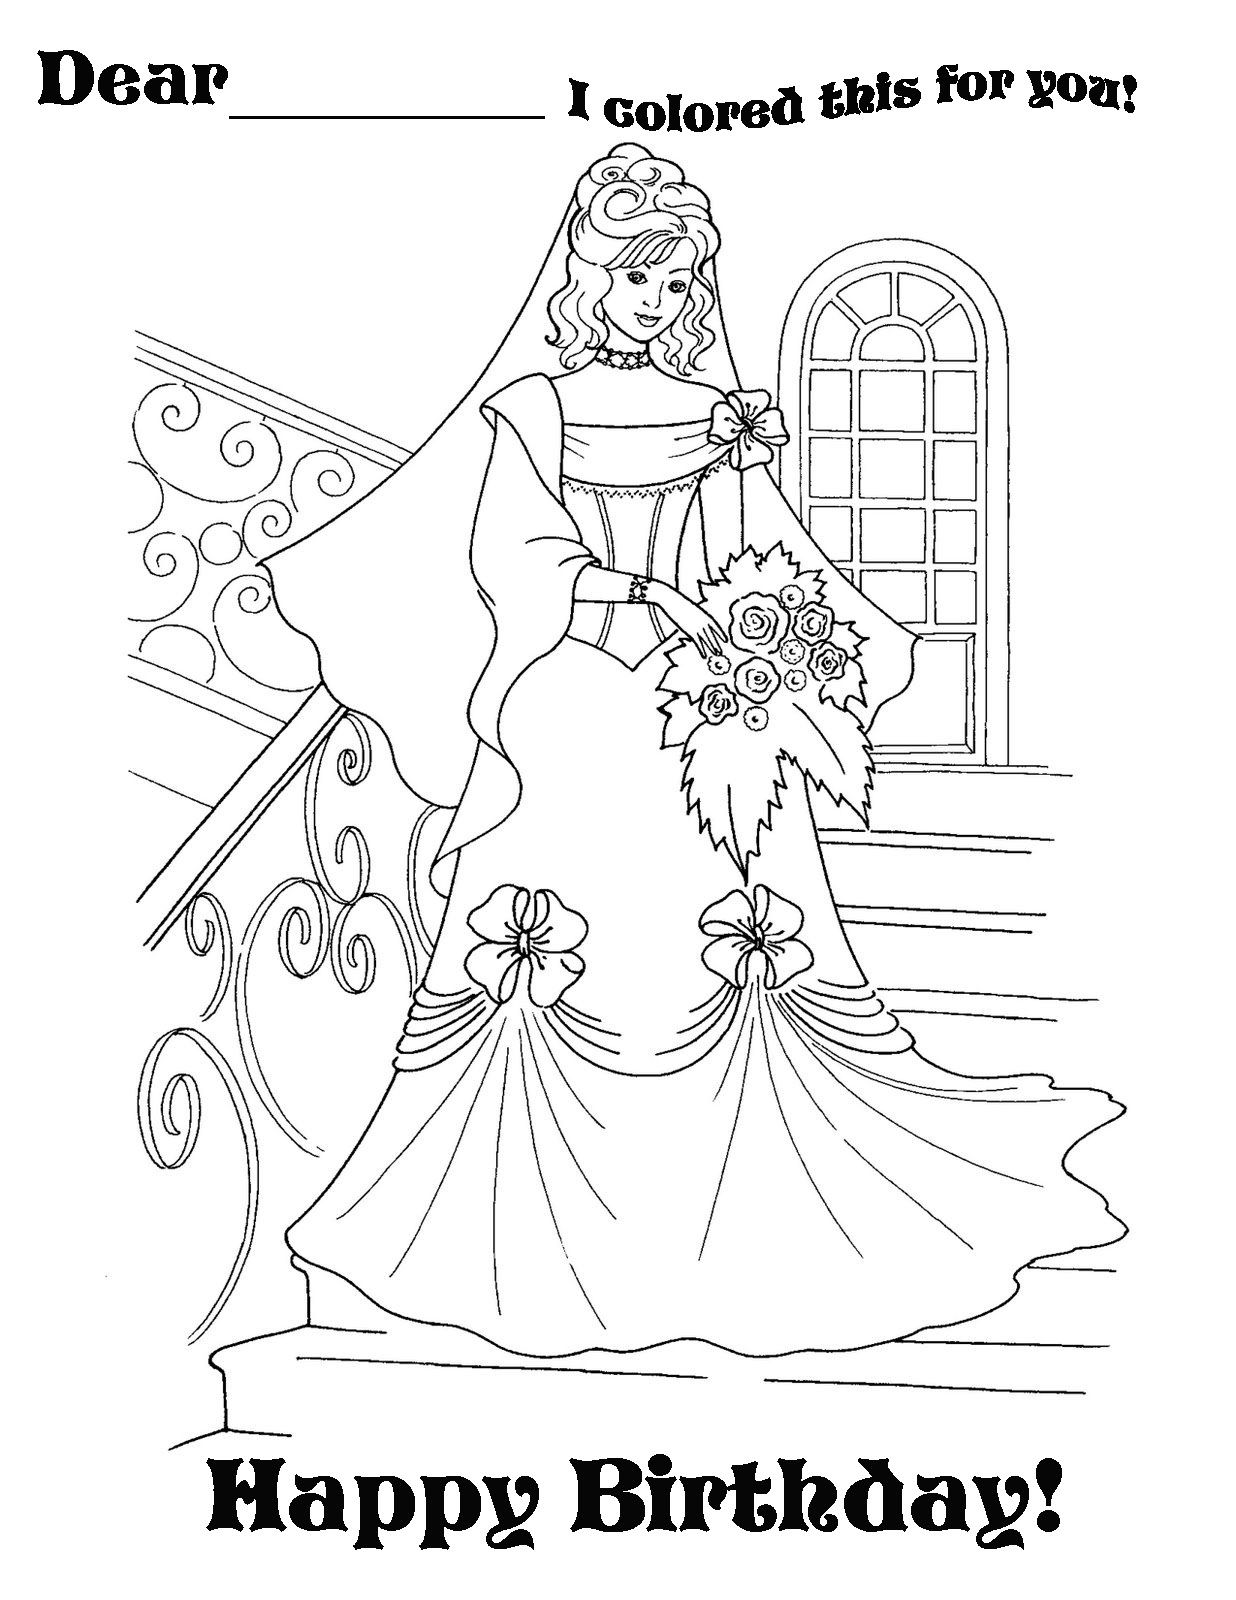 Princess Happy Birthday Kids Eclectic Coloring Pages